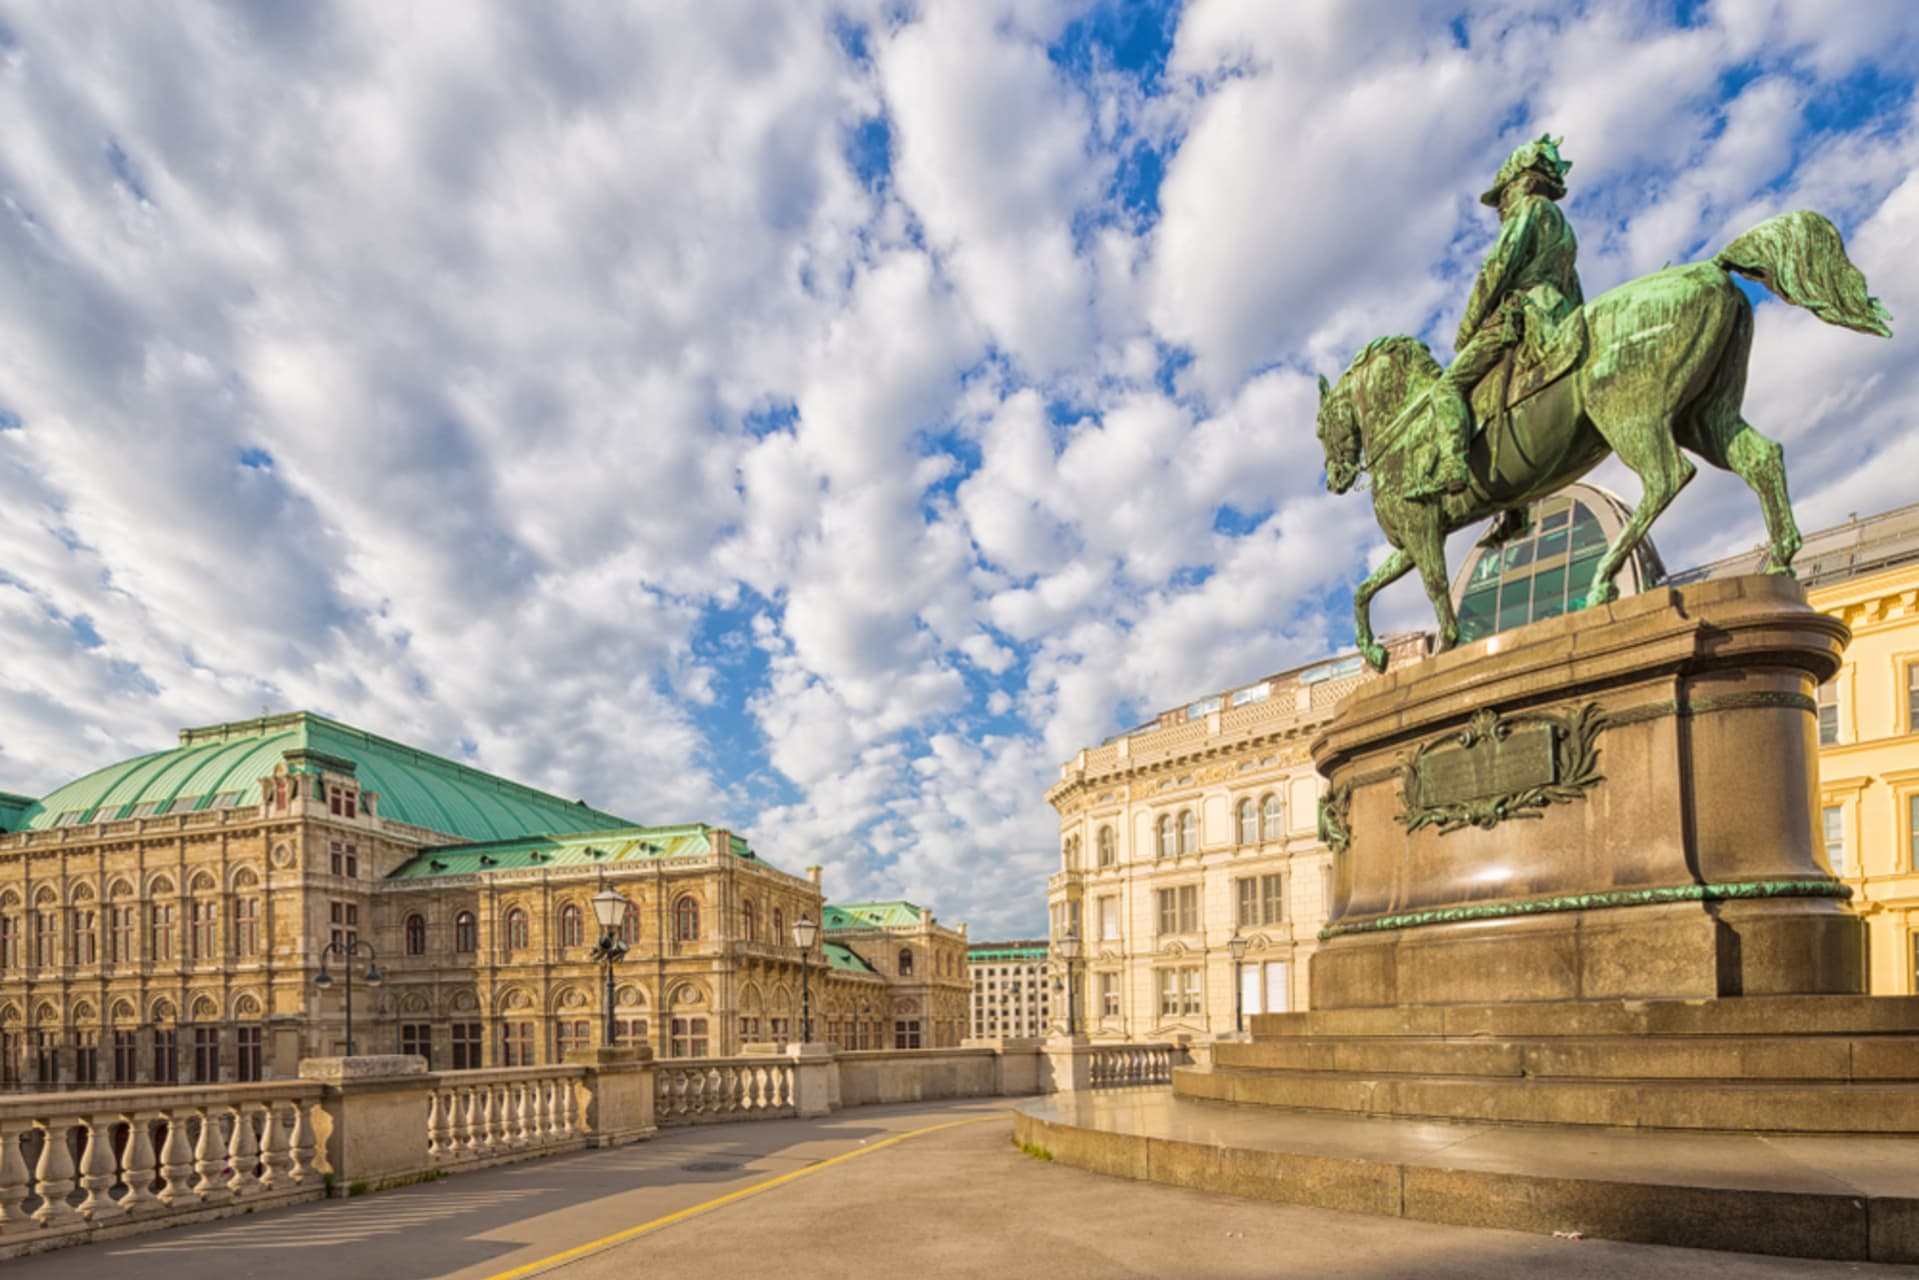 Vienna - Walking with the Habsburgs - From the Winter Palace to the Opera House